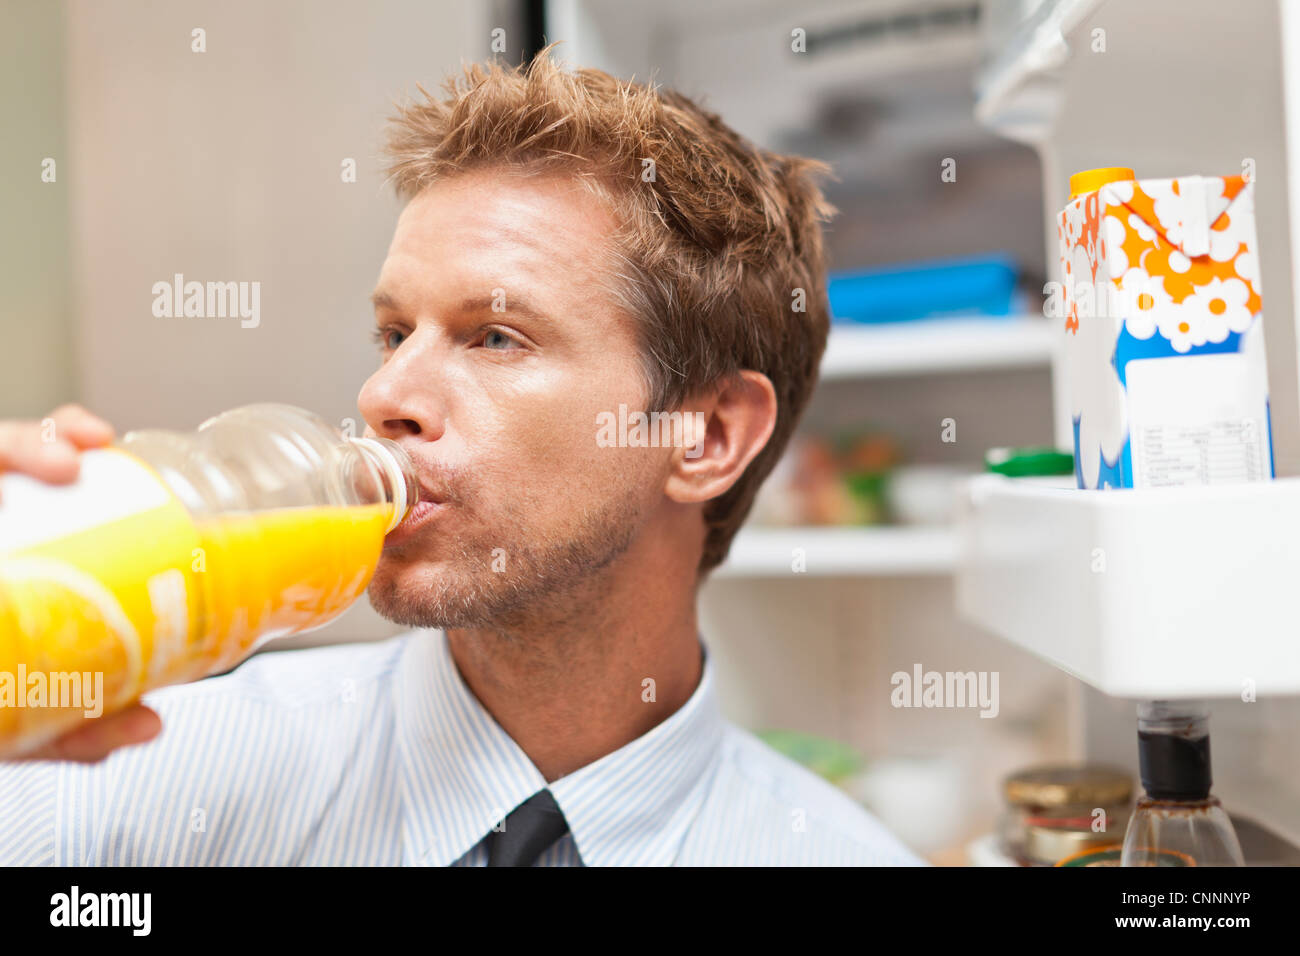 Man drinking juice out of bottle - Stock Image